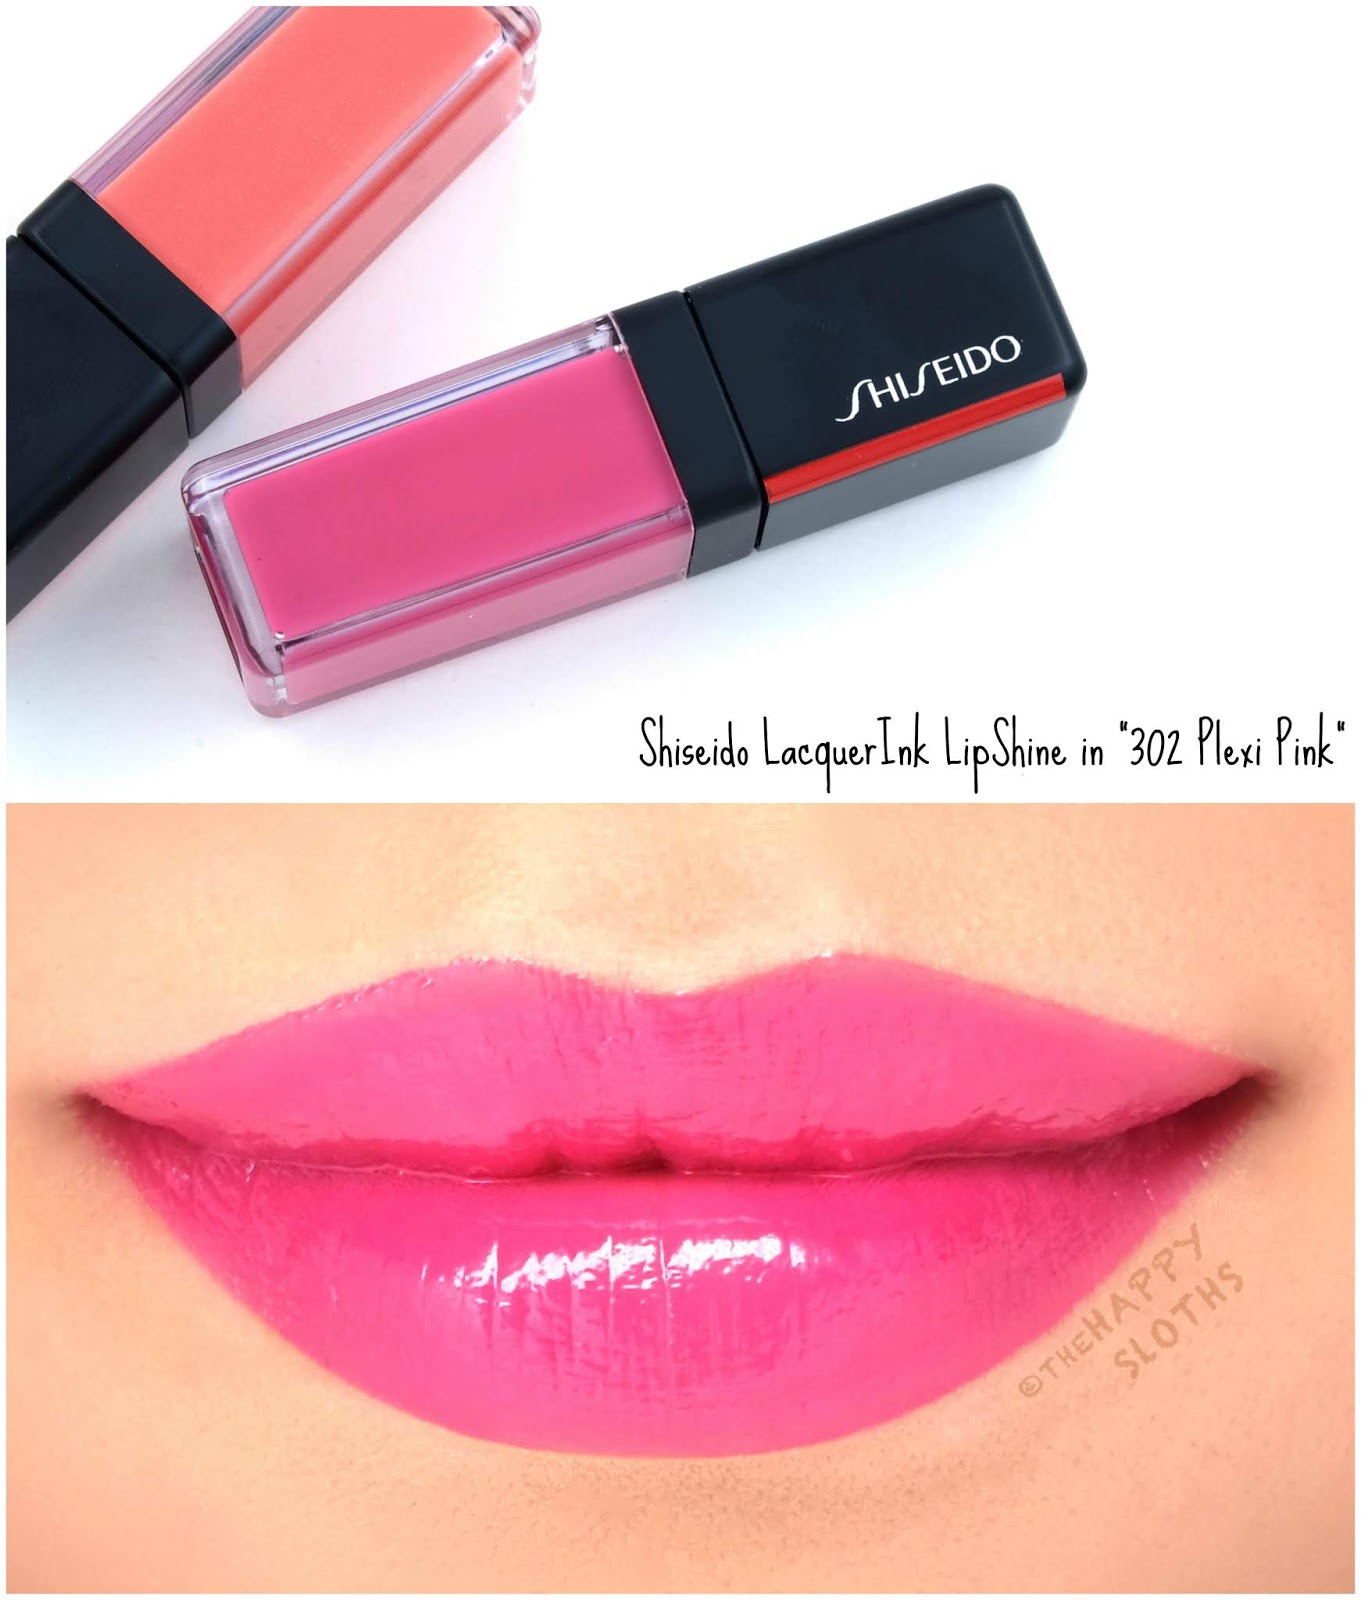 "Shiseido | LacquerInk LipShine in ""302 Plexi Pink"": Review and Swatches"